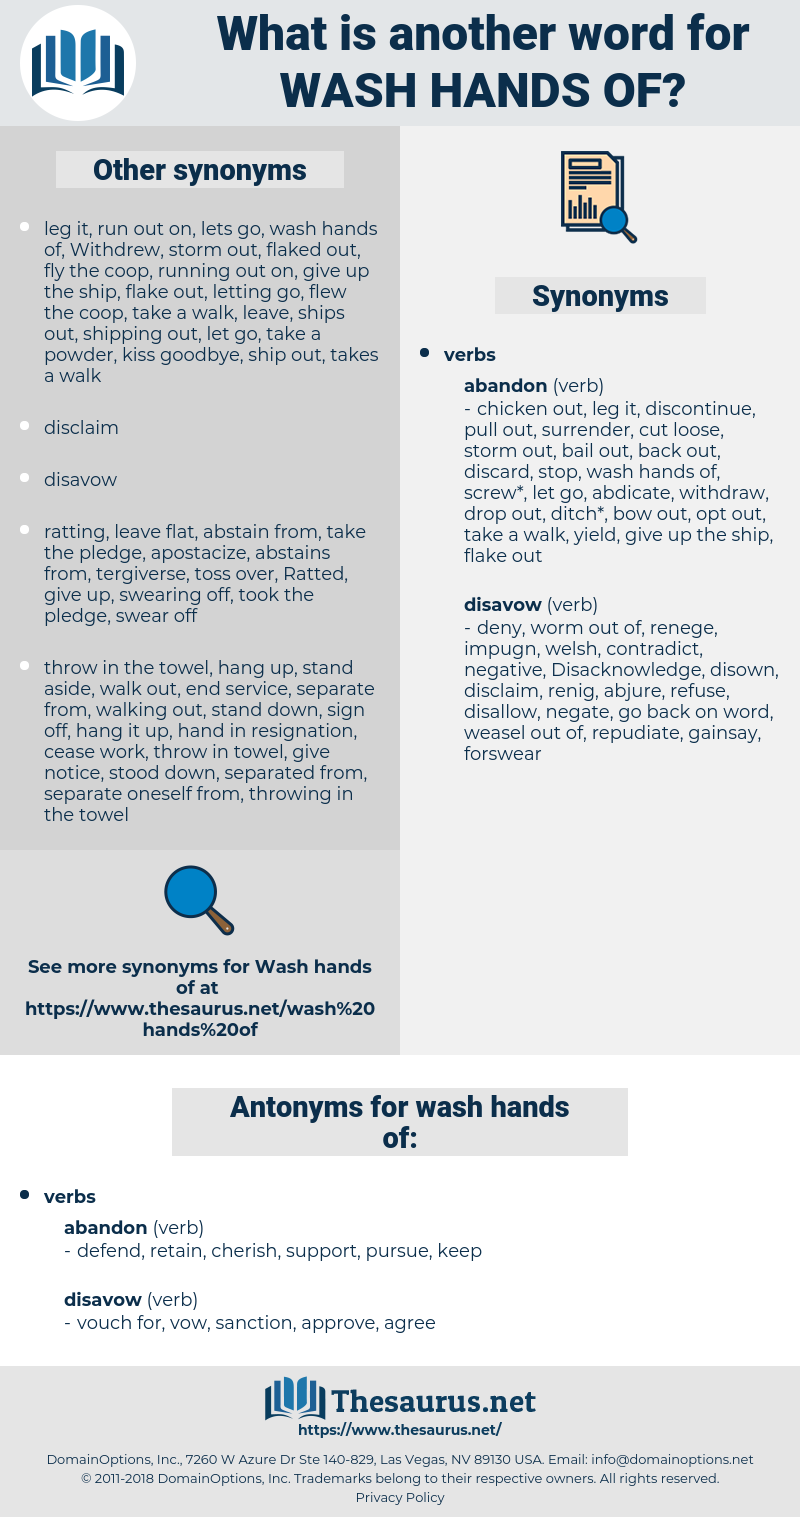 wash hands of, synonym wash hands of, another word for wash hands of, words like wash hands of, thesaurus wash hands of